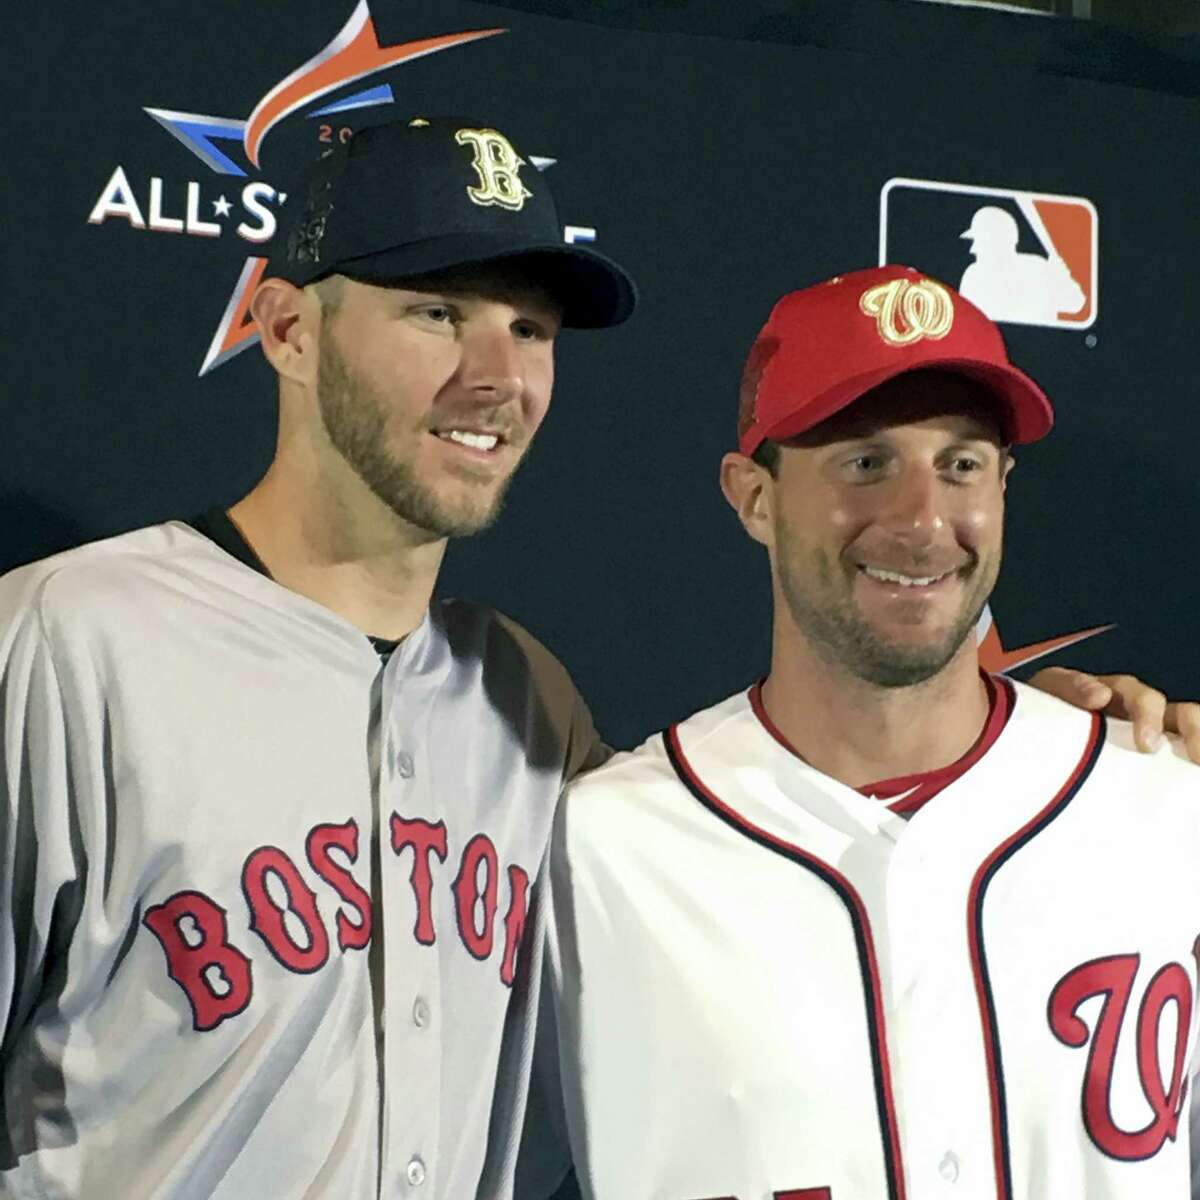 American League pitcher Chris Sale, left, poses with National League pitcher Max Scherzer at a press conference in Miami on Monday.